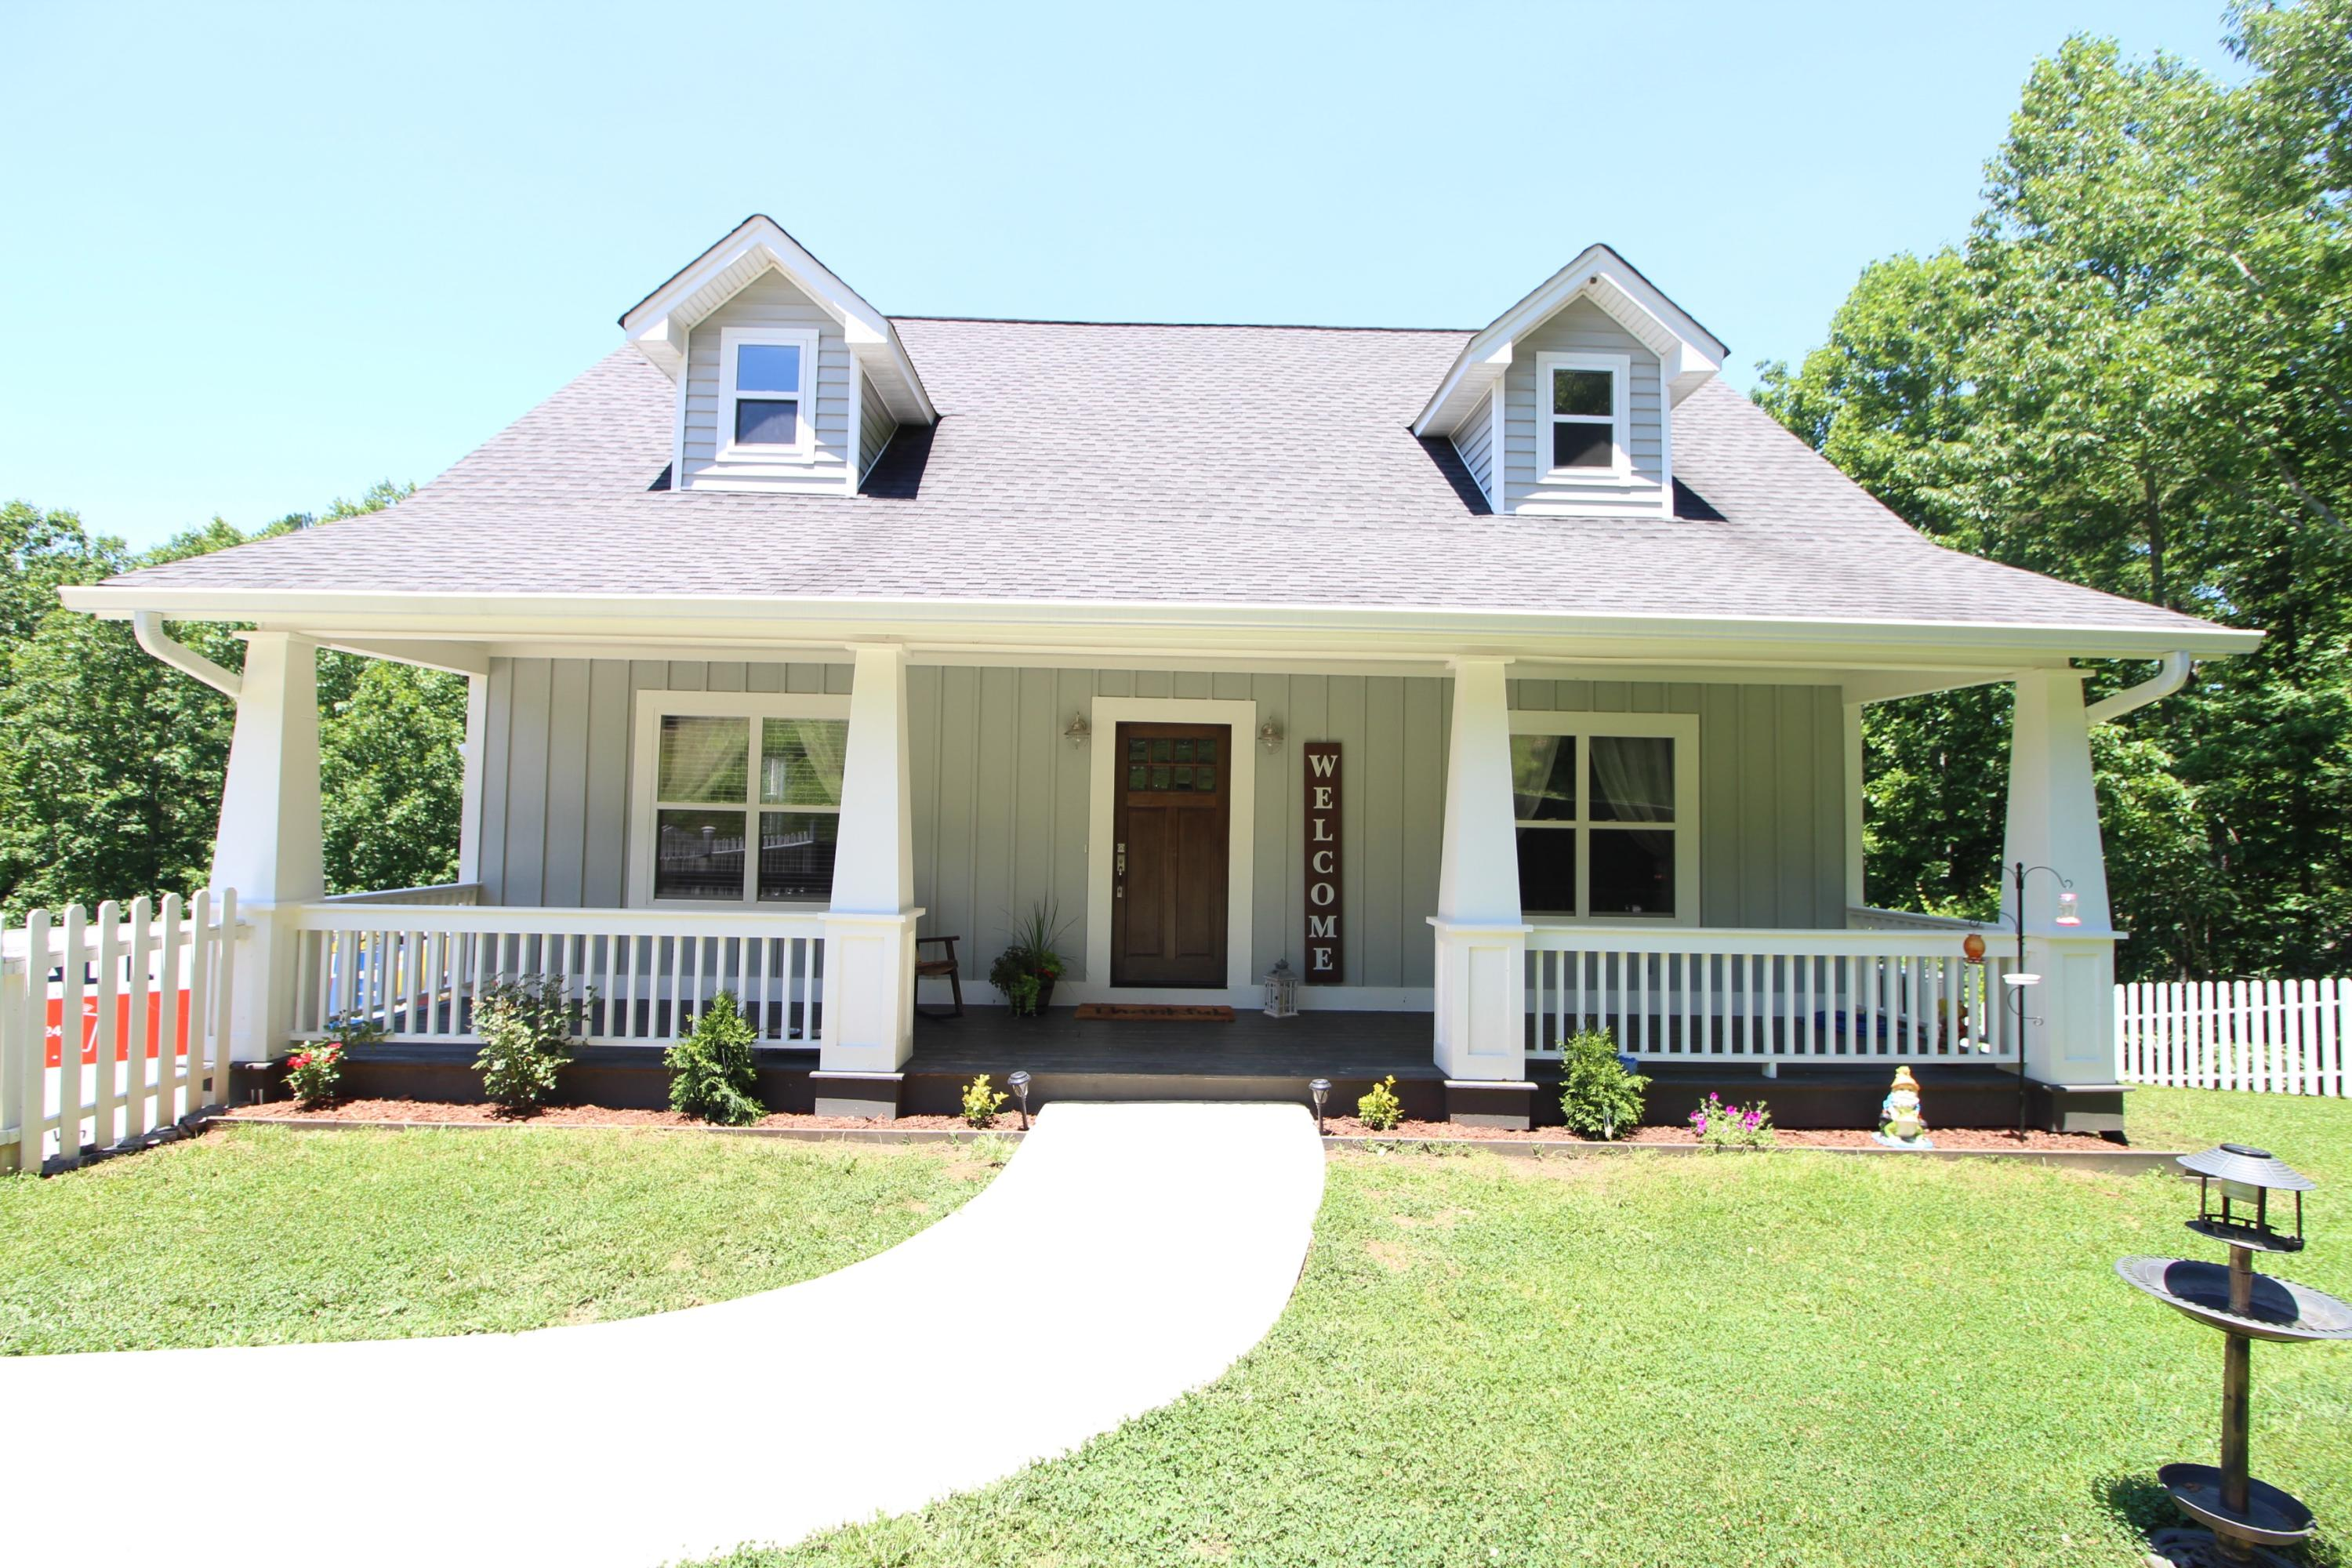 210 Nw Mcclanahan Dr, Georgetown, TN 37336